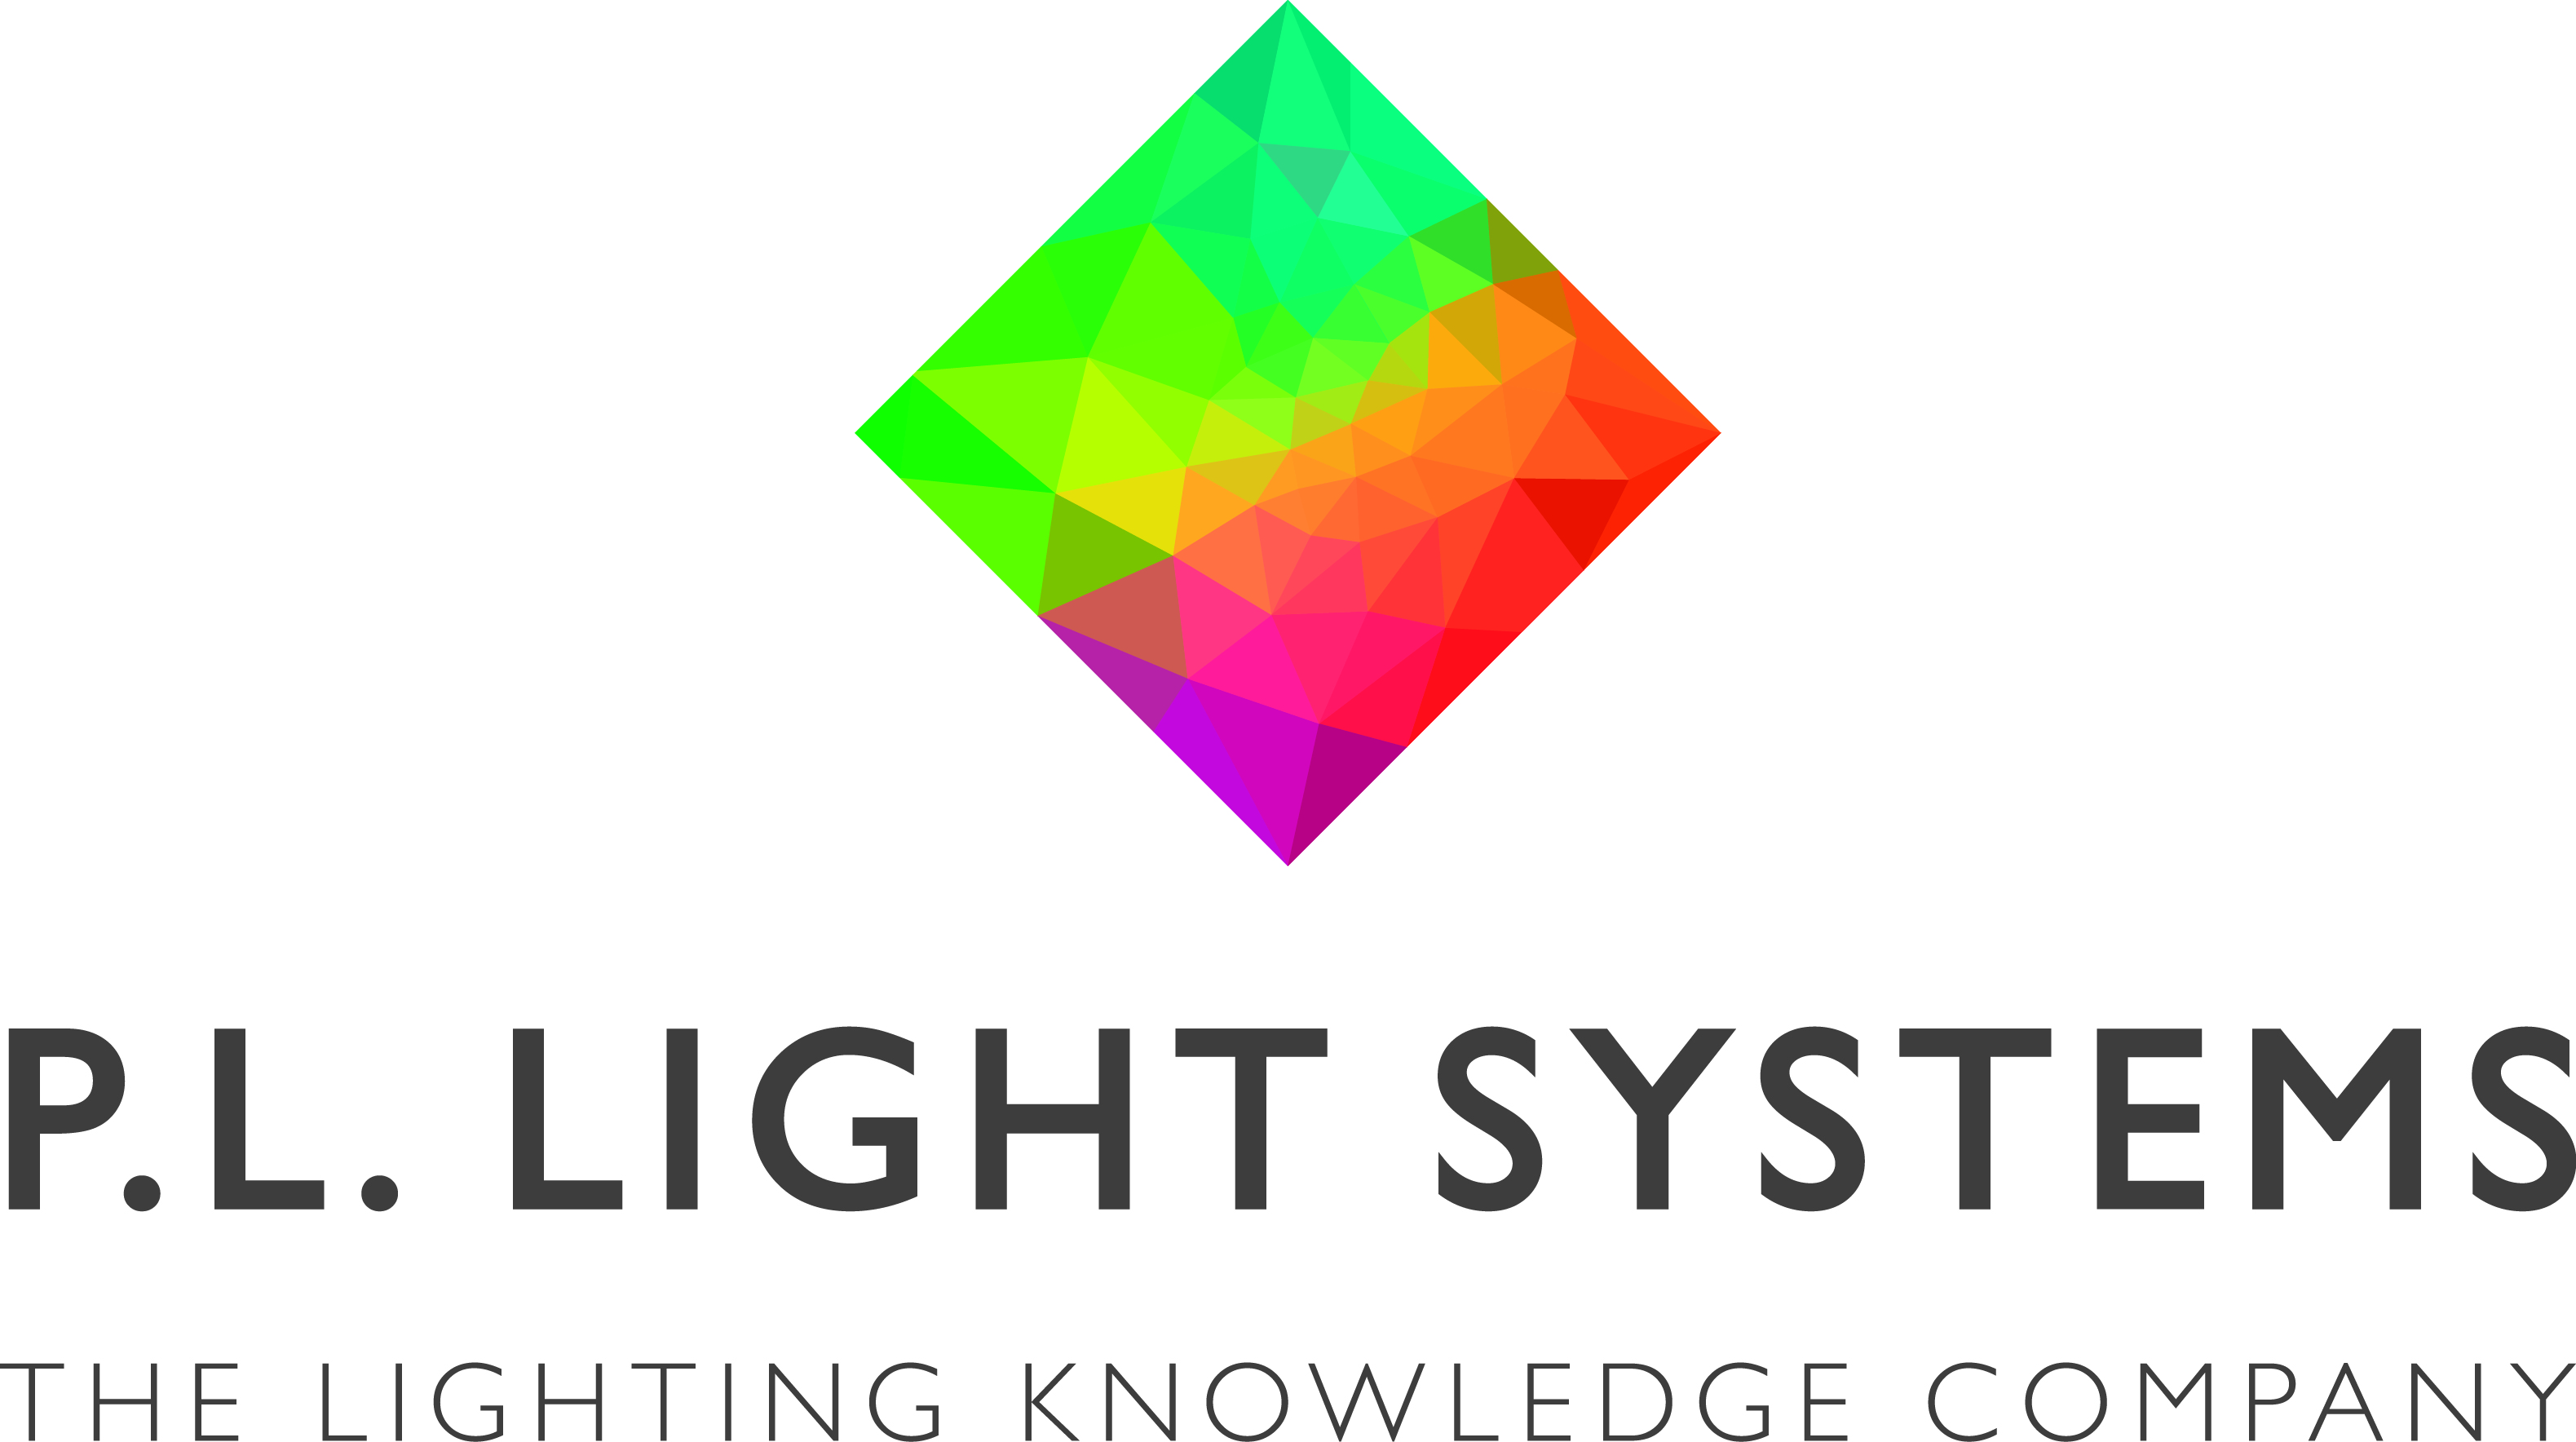 PL Lighting Systems